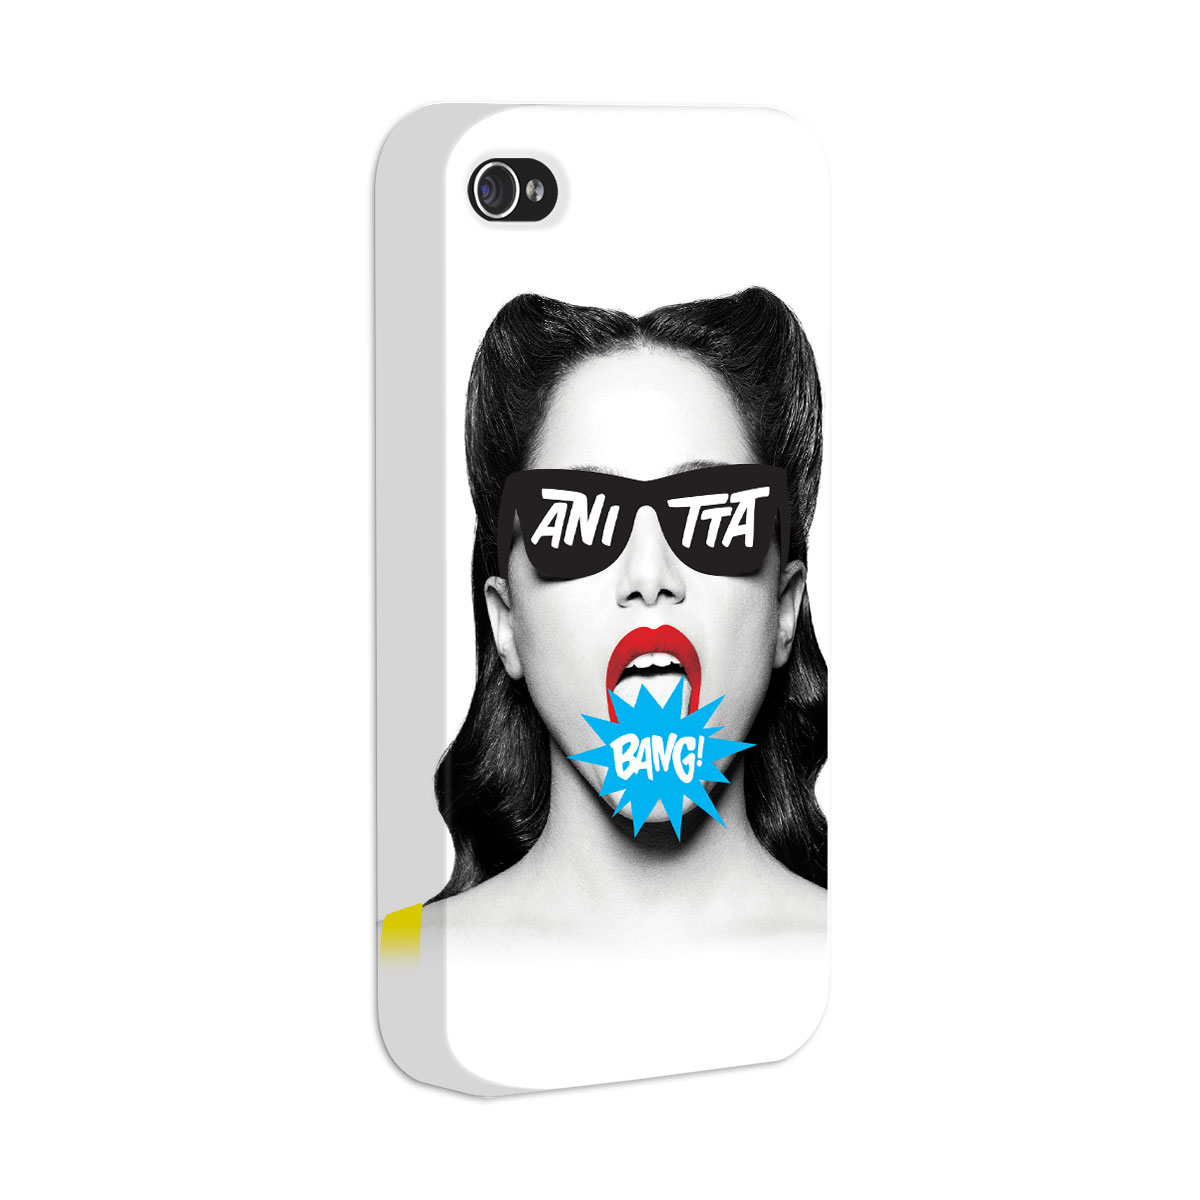 Capa para iPhone 4/4S Anitta Bang!